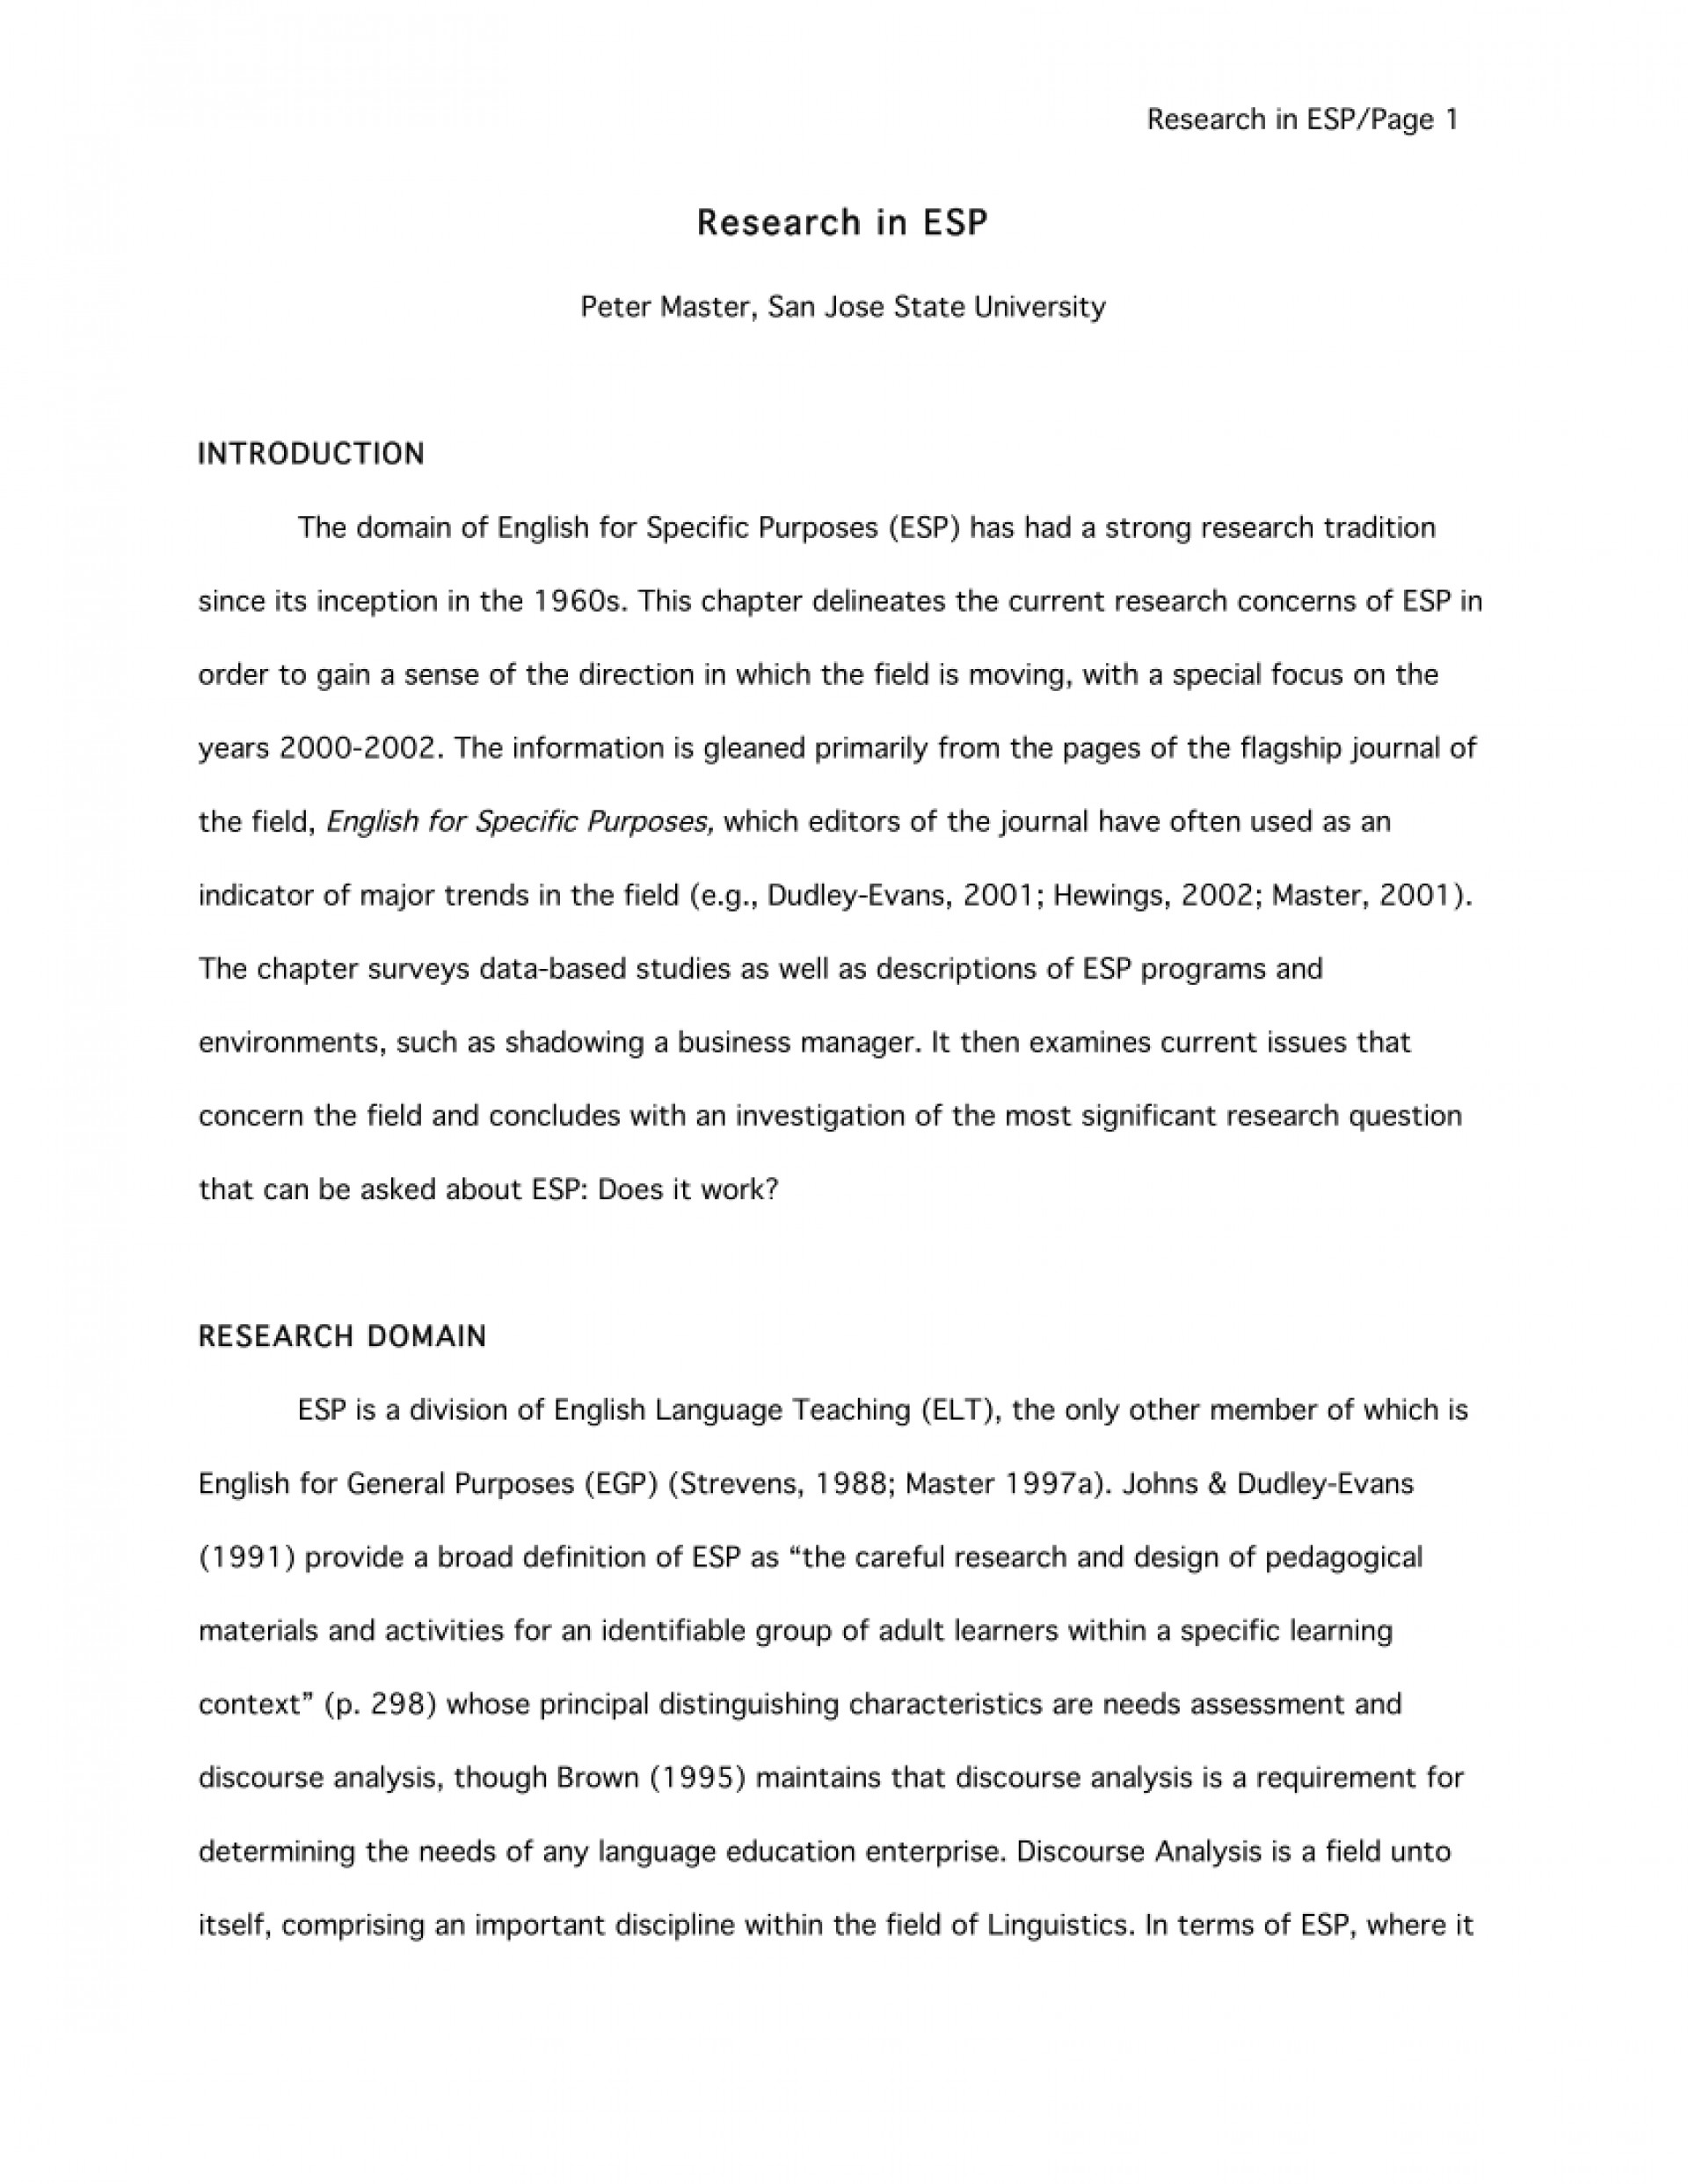 004 Largepreview Research Paper Sensational English College Example For Writing Pdf Structure 1920